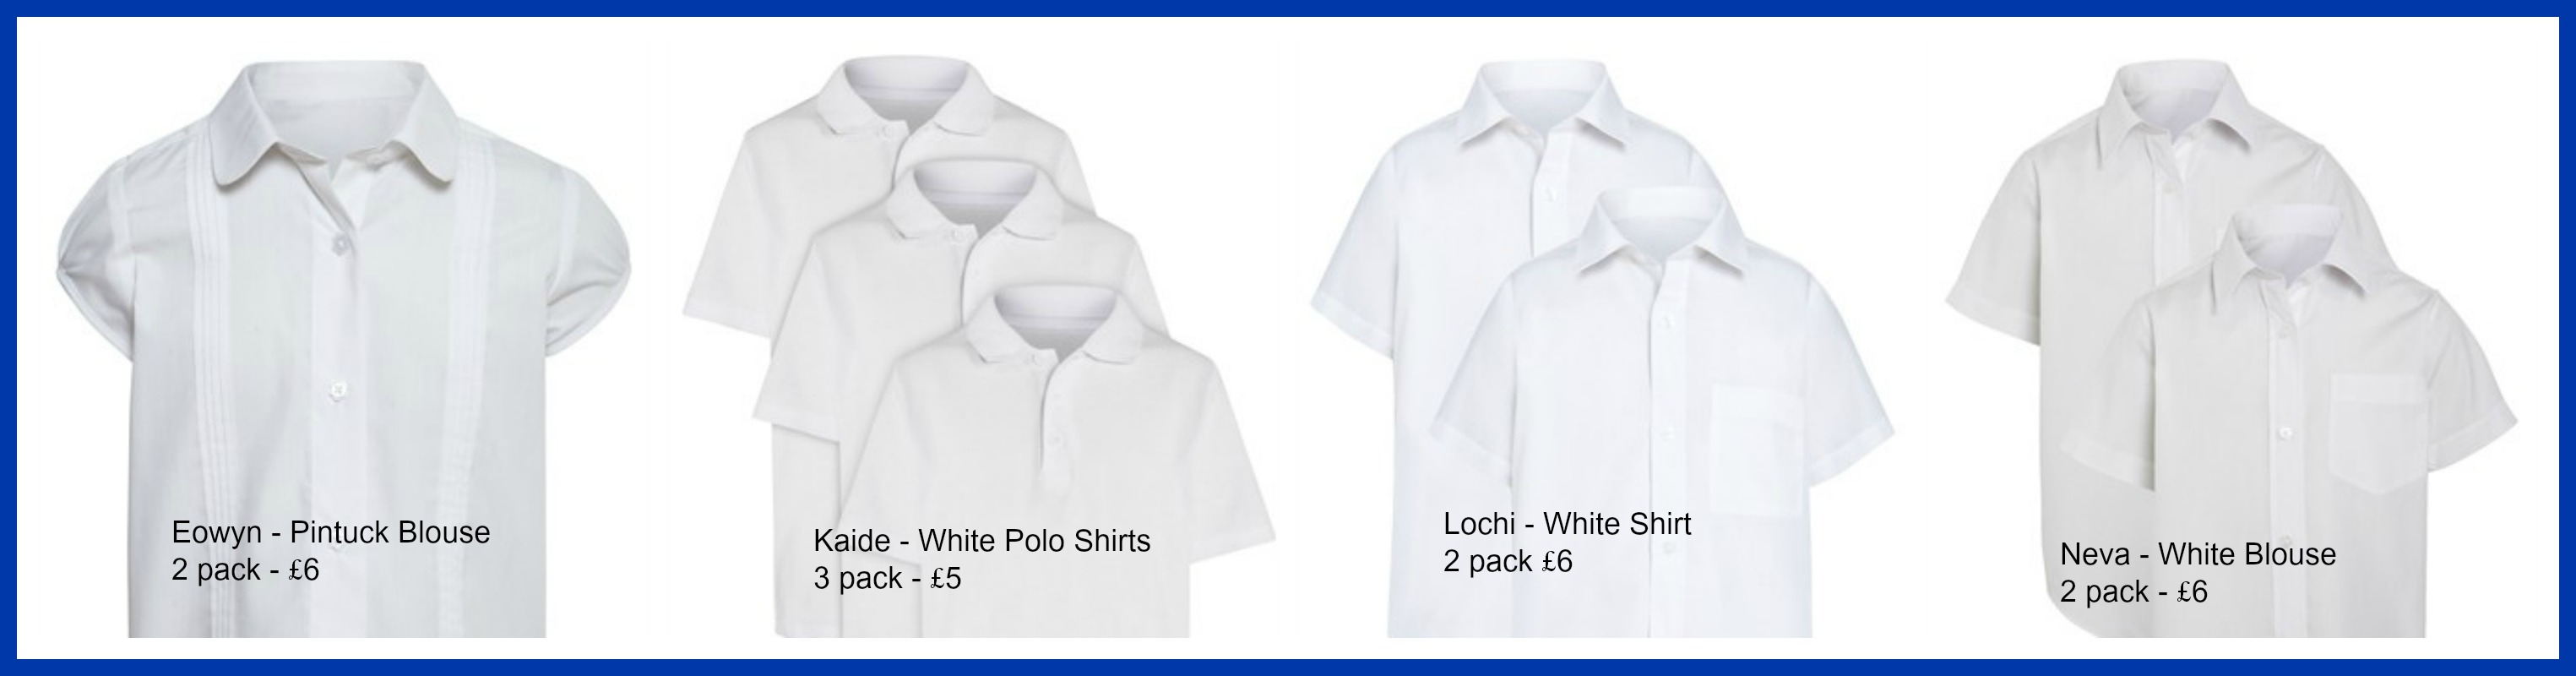 0c4e86b12 ... across to a new High School in September, which requires specific school  uniform, luckily we get to purchase our own choice of white shirts/blouses,  ...